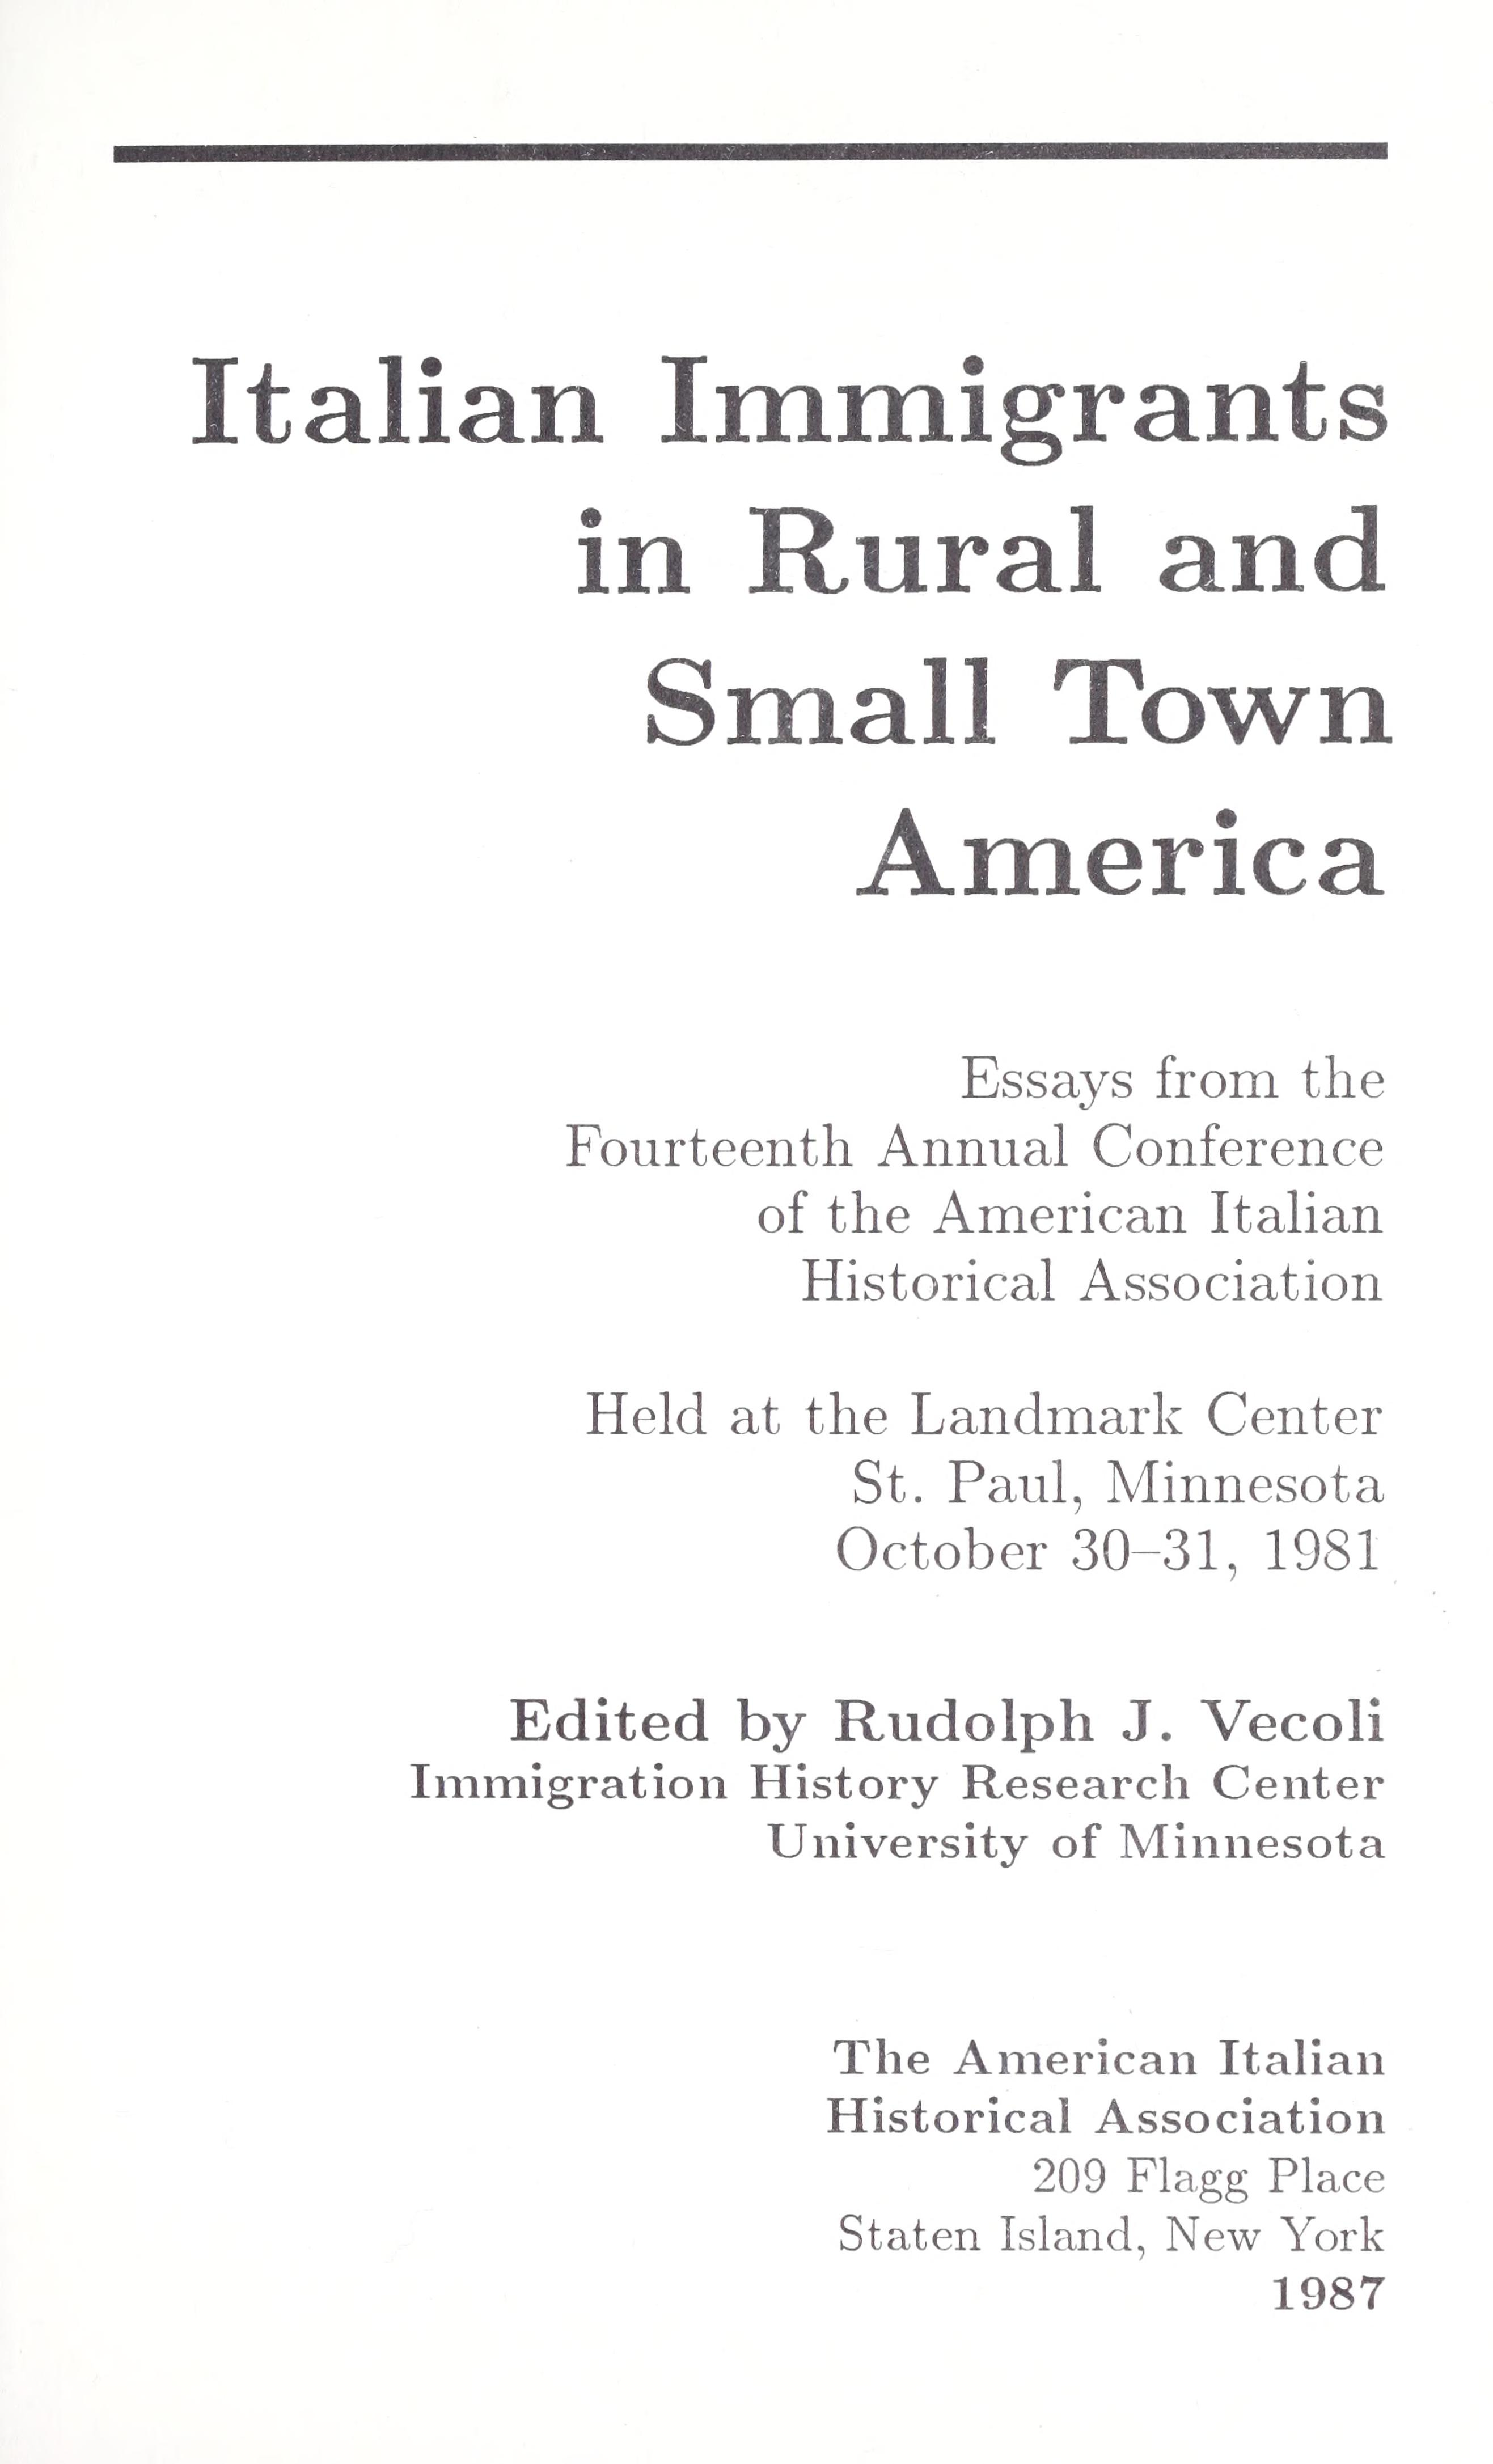 Italian immigrants in rural and small town America Download